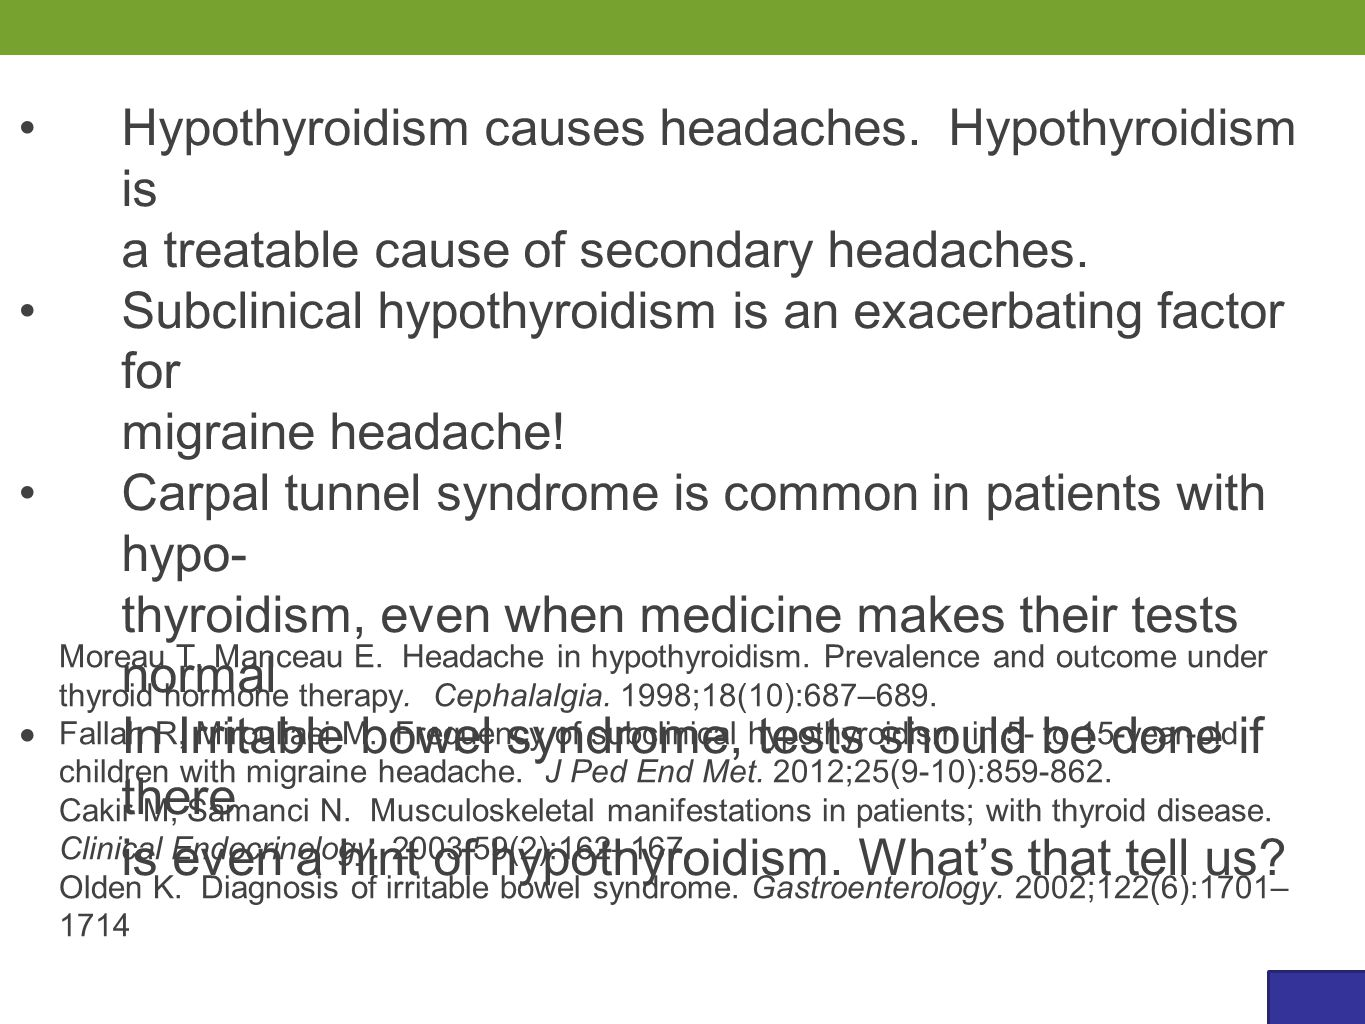 Hypothyroidism causes headaches. Hypothyroidism is a treatable cause of secondary headaches.